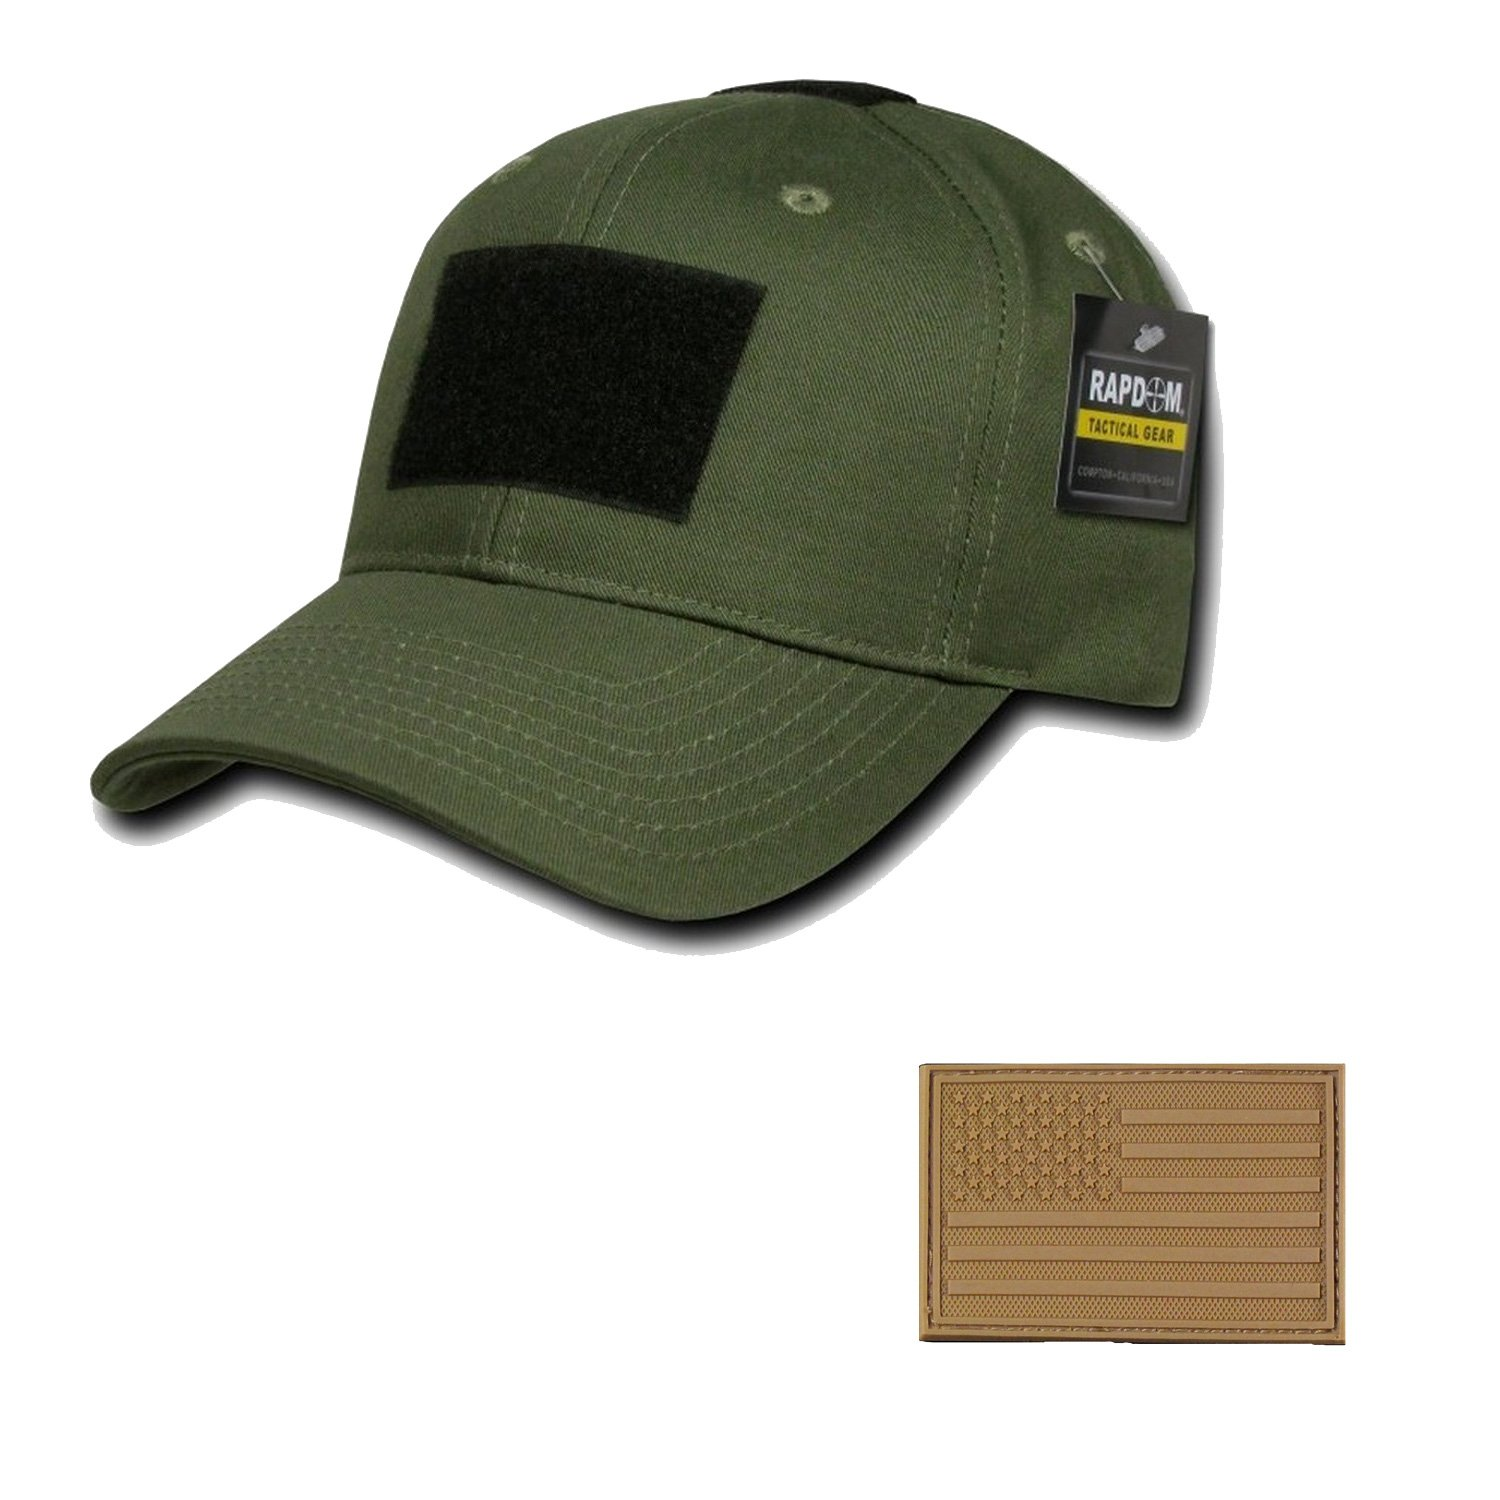 RAPDOM Genuine Tactical Constructed Ball Operator Cap Olive Caps with Free Patch (Olive, USA Flag Coyote Patch) by RAPDOM